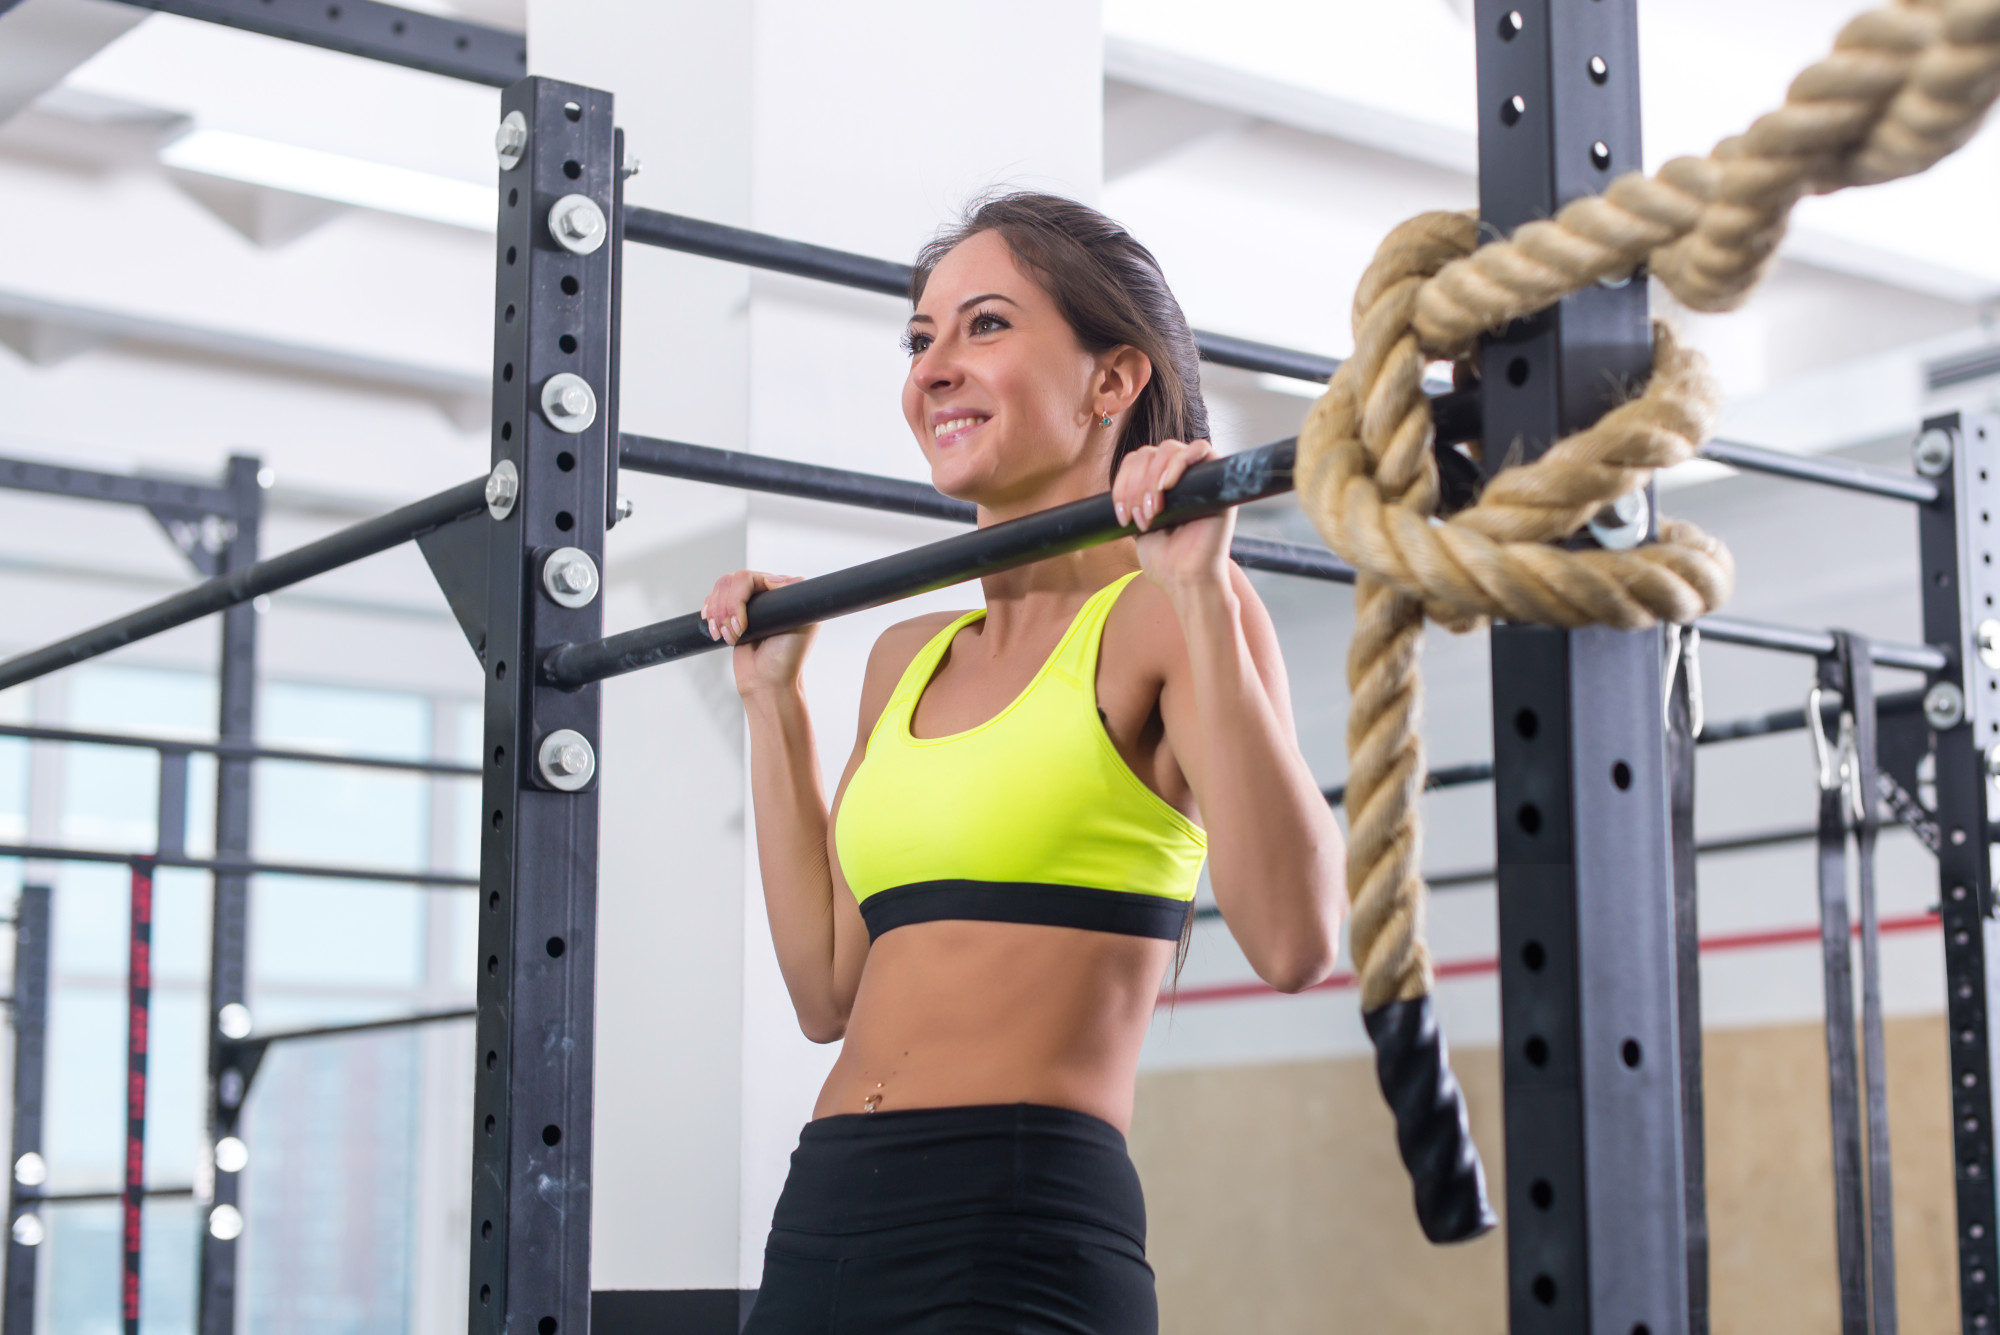 Fall In Love With Pull Up Accessory Lifts